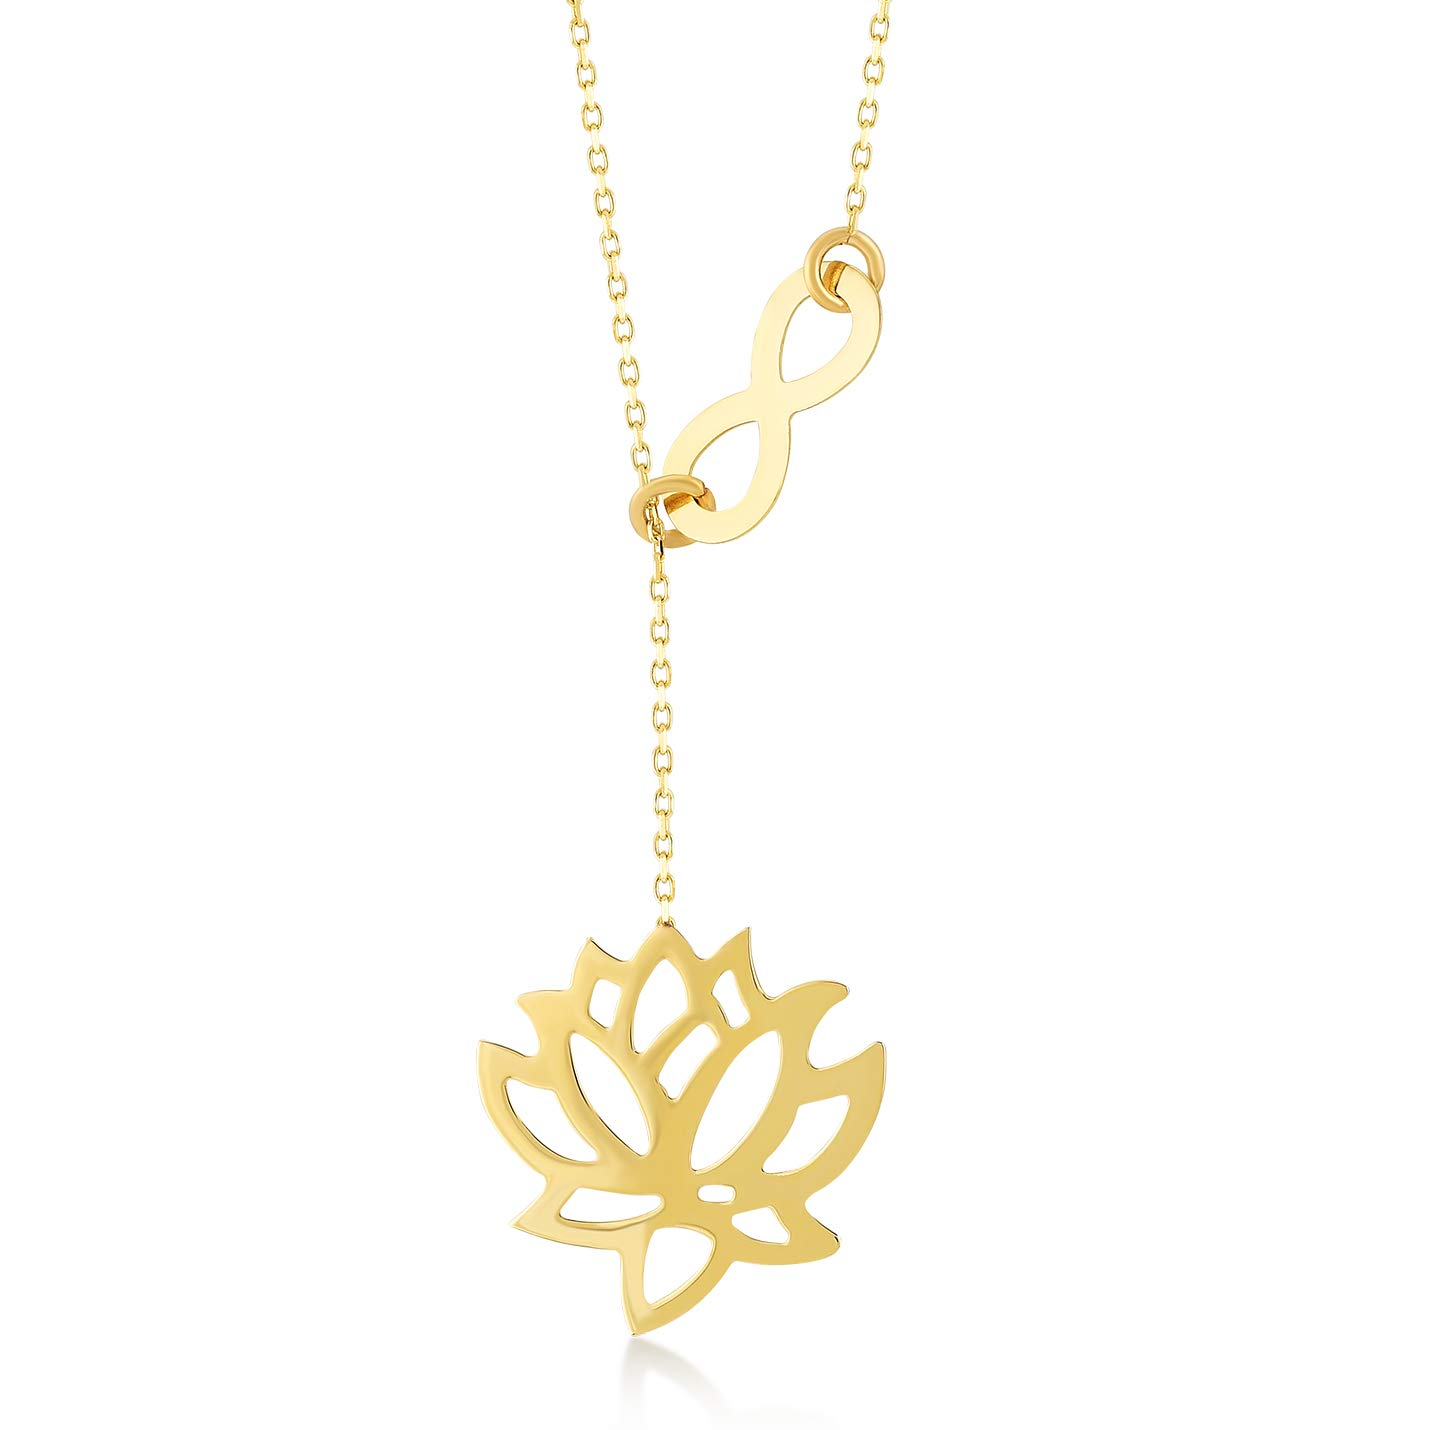 GELIN 14k Yellow Gold Lotus and Infinity Chain Y Necklace for Women, 18'' by Gelin